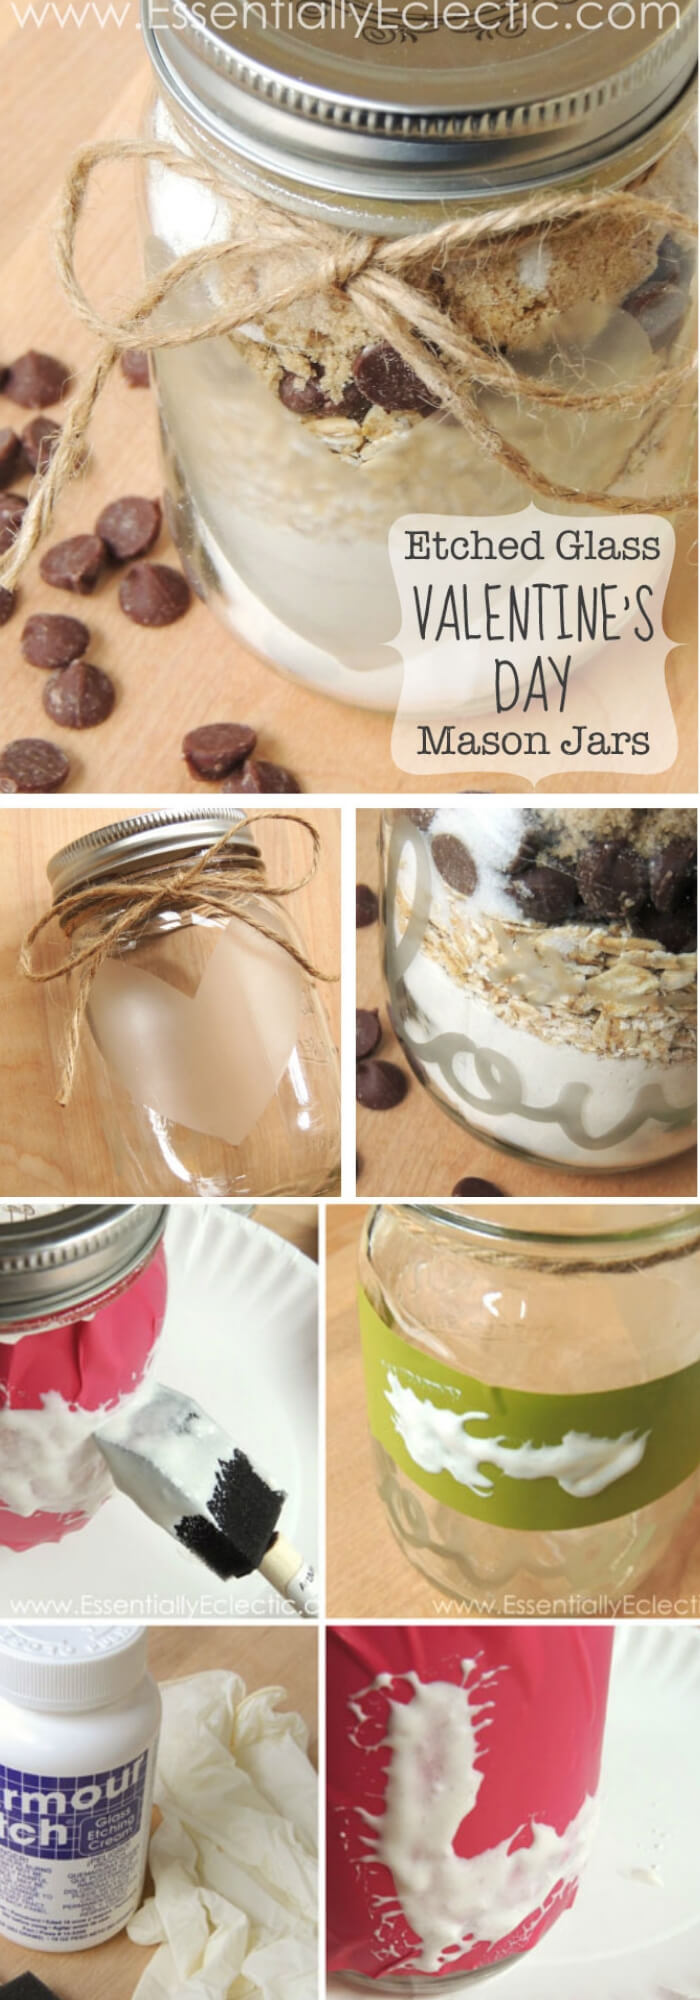 Etched Glass Valentine's Day Gift Mason Jars + Free Cut File | DIY Mason Jar Gift Ideas For Valentine's Day | FarmFoodFamily.com